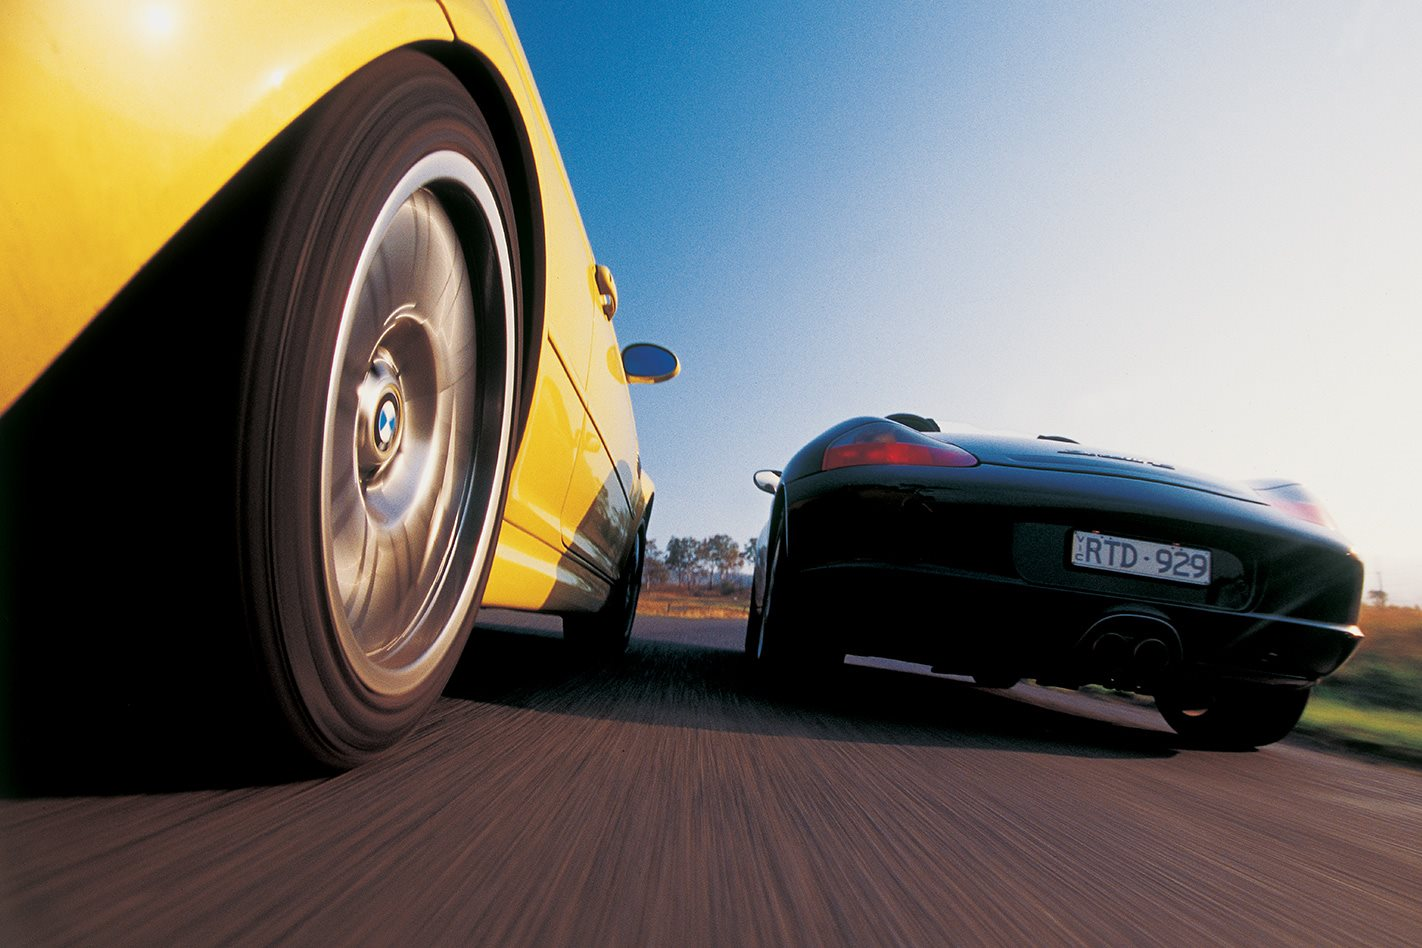 2003 BMW M3 vs 2003 Porsche Boxster S wheels